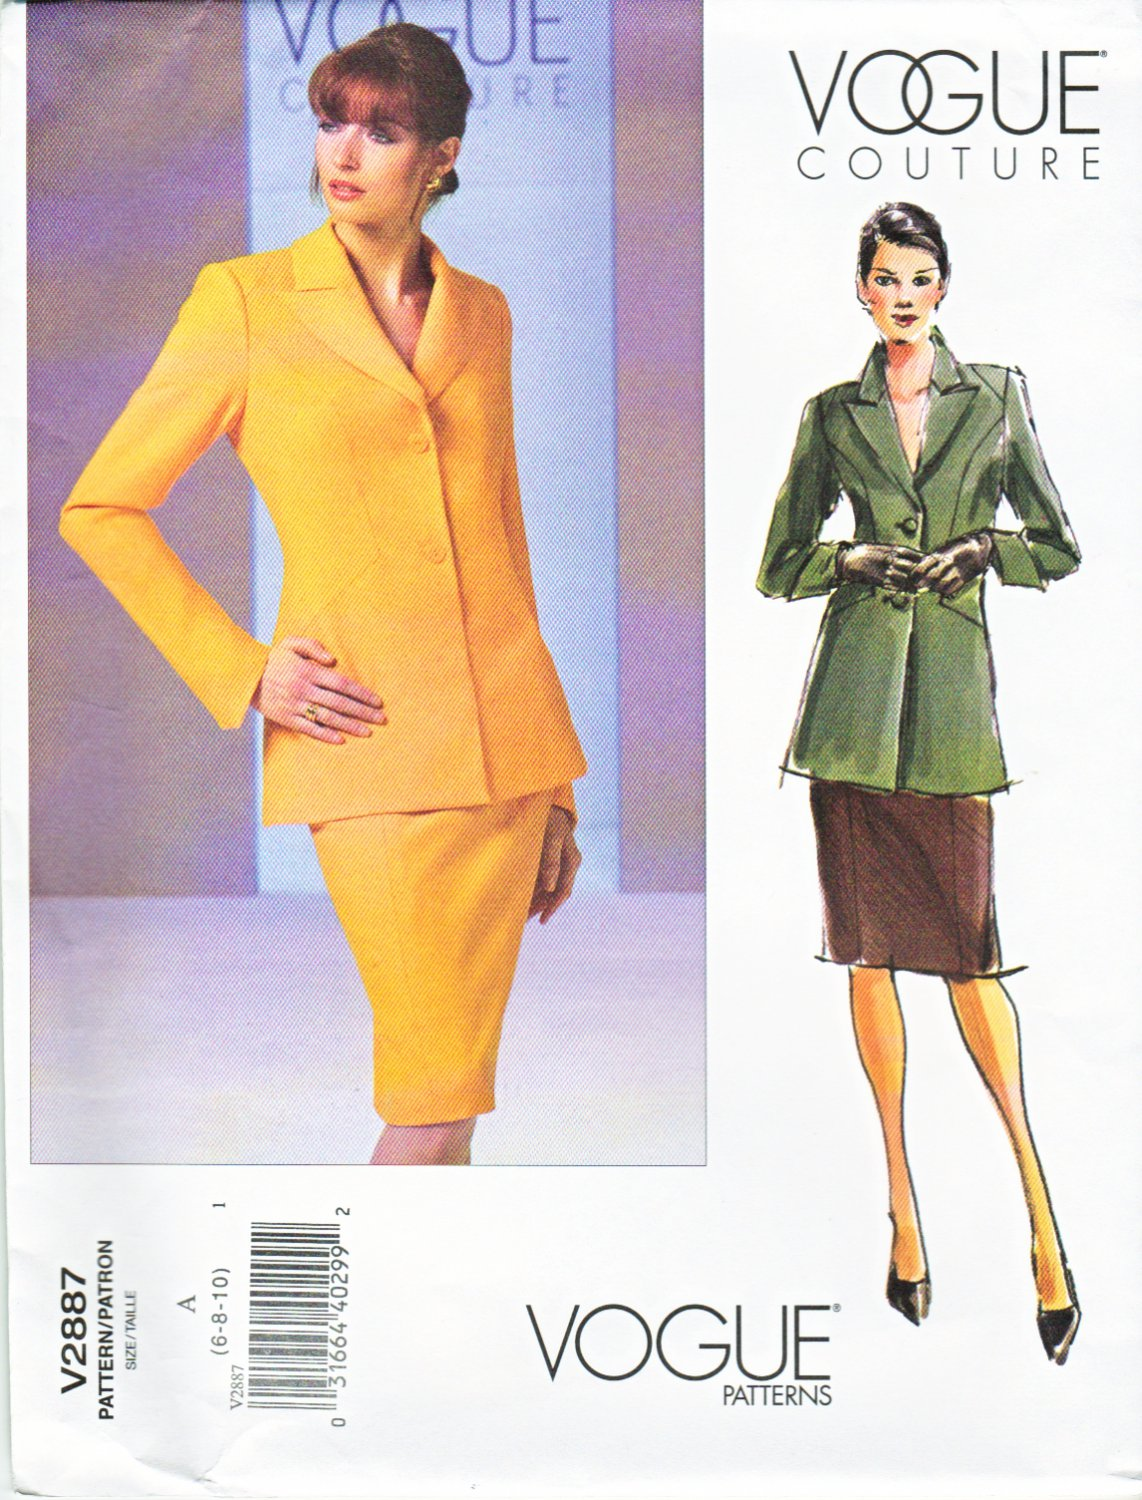 Vogue Sewing Pattern 2887 Misses Size 18-20-22 Couture Lined Jacket Skirt Suit